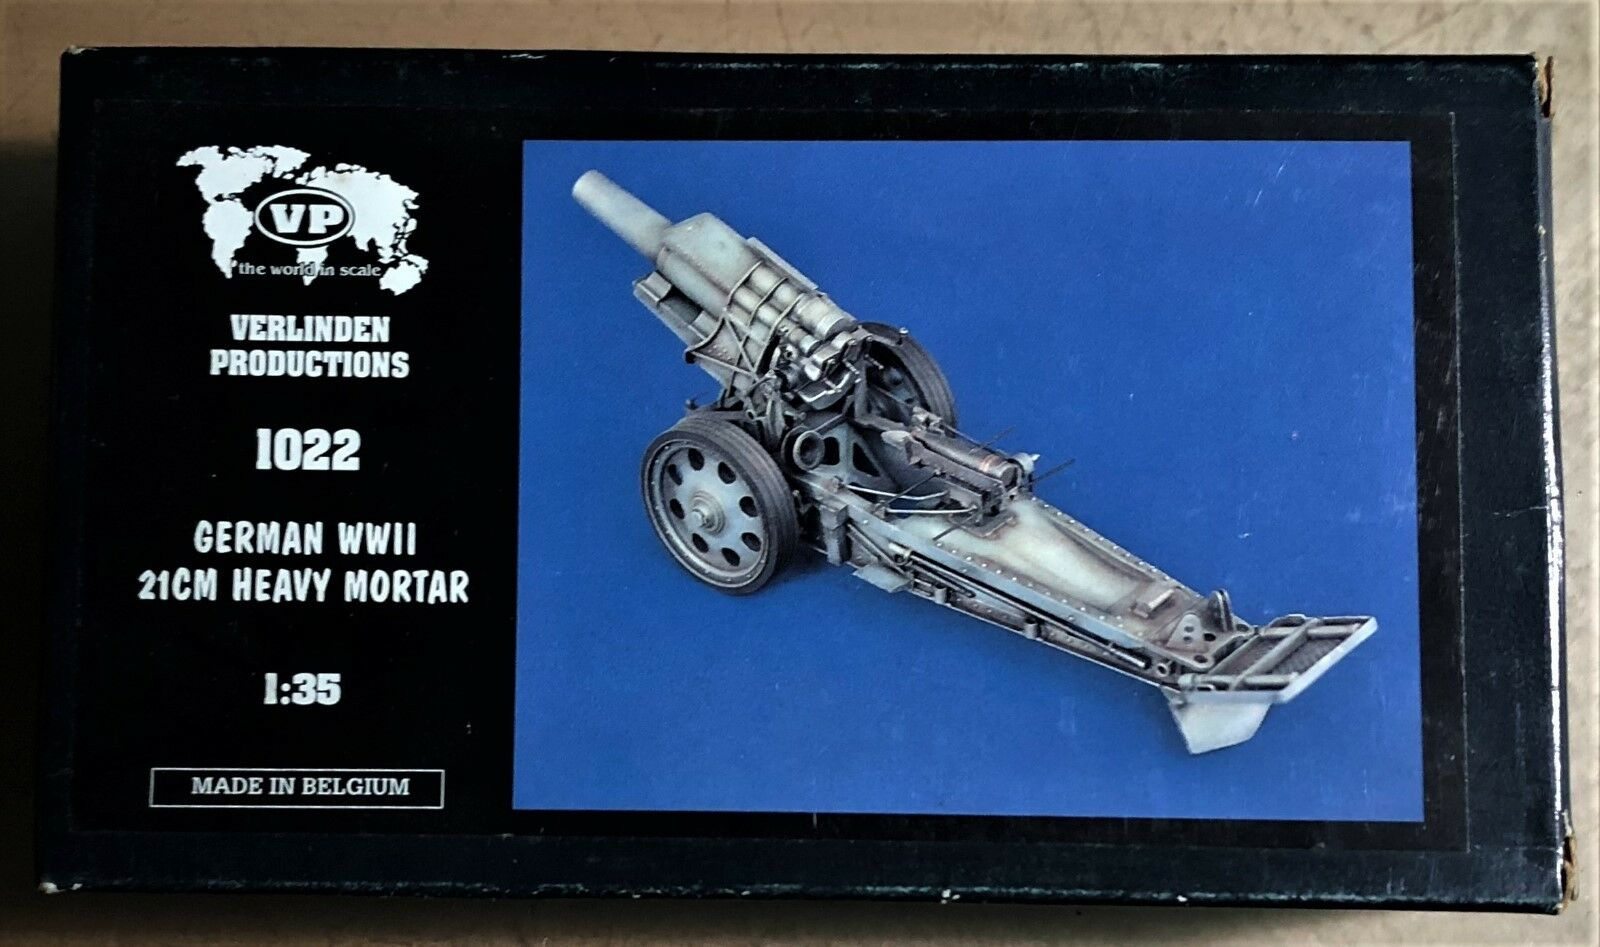 VERLINDEN 1022 - GERMAN WWII 21cm HEAVY MORTAR - 1 35 RESIN KIT NUOVO